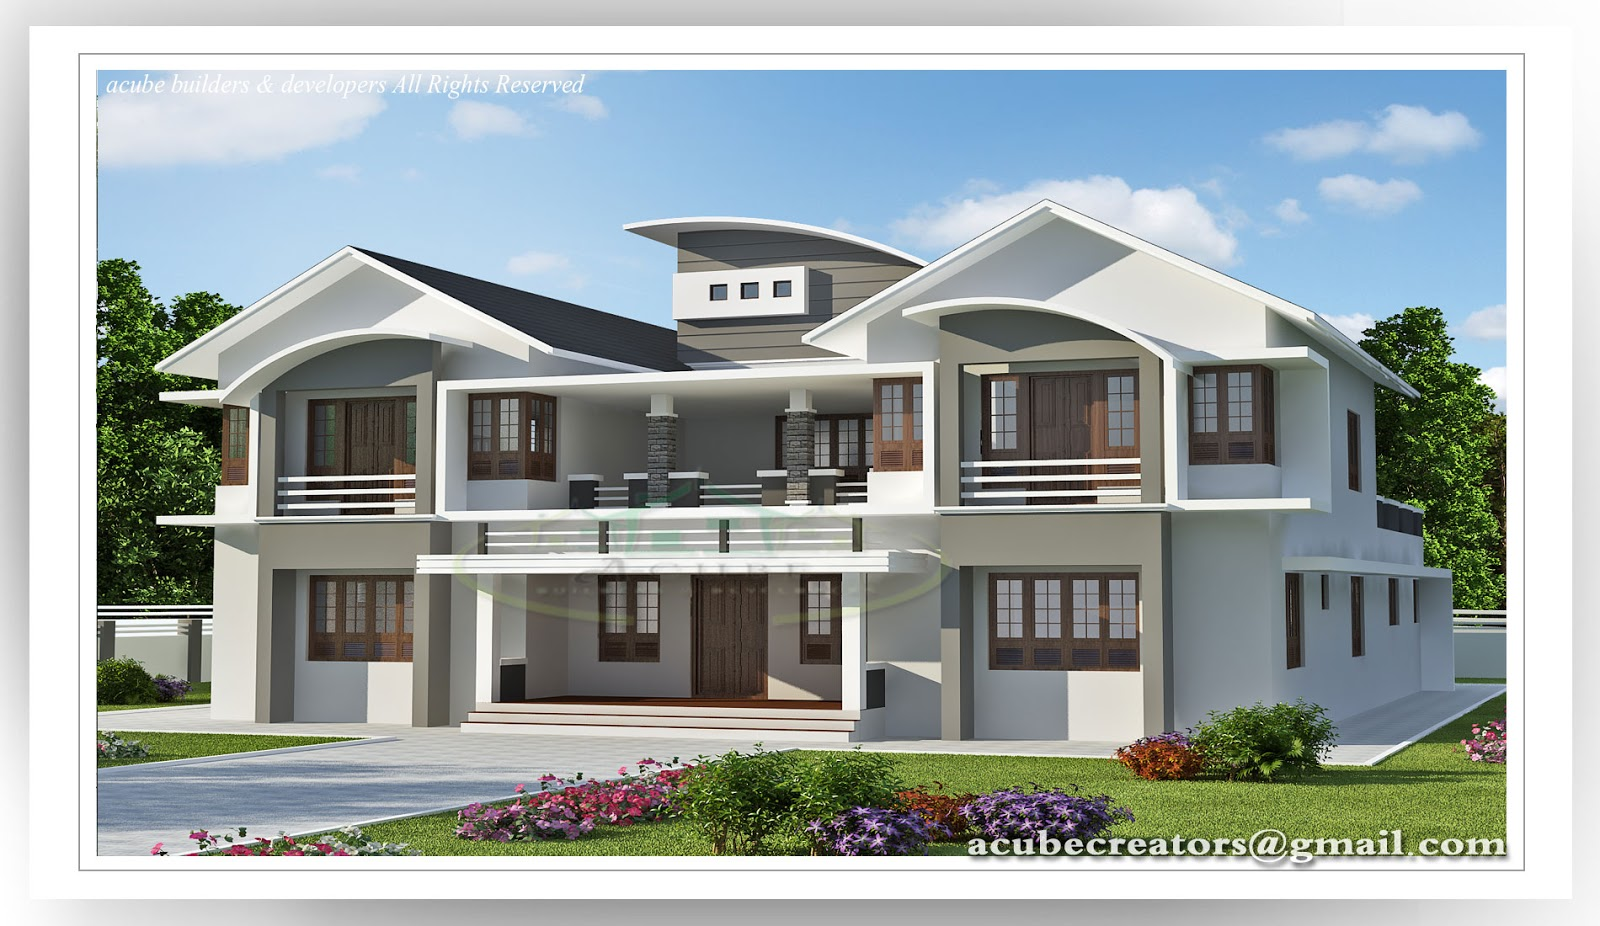 6 Bedroom Homes 3593 Square Feet 6 Bedrooms 4 Batrooms 2 Parking